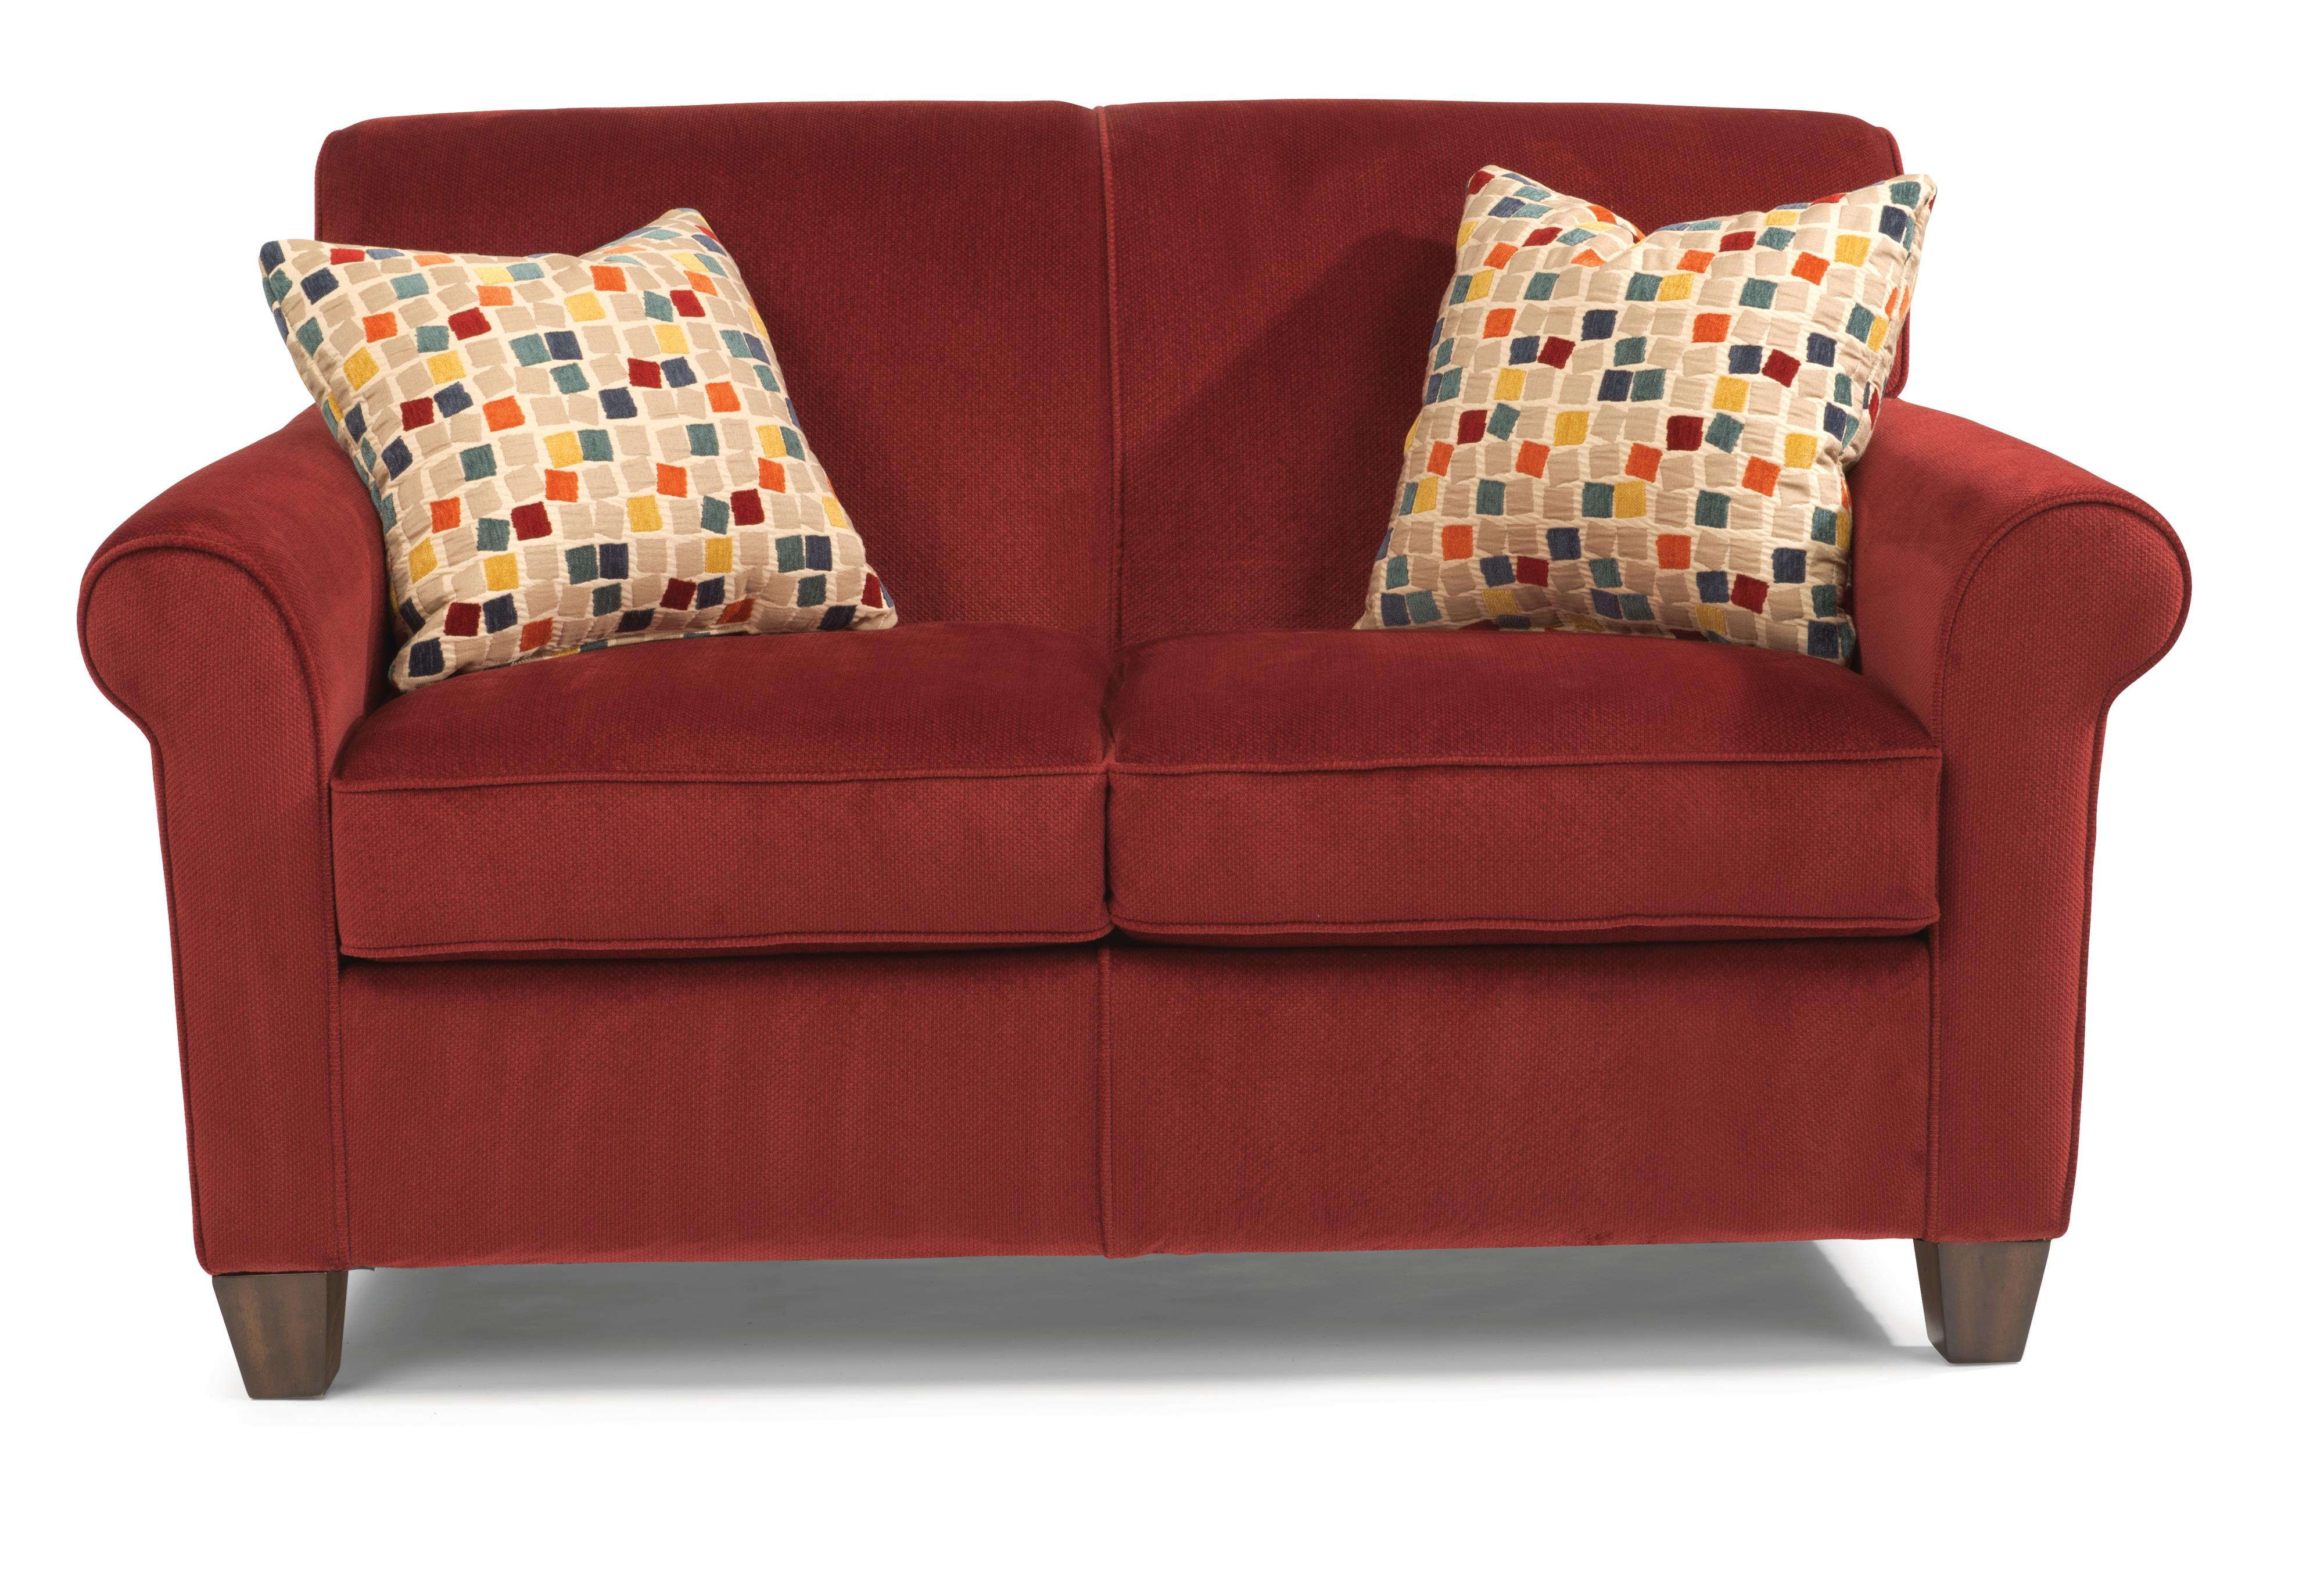 Flexsteel Dana Loveseat - Item Number: 5990-20